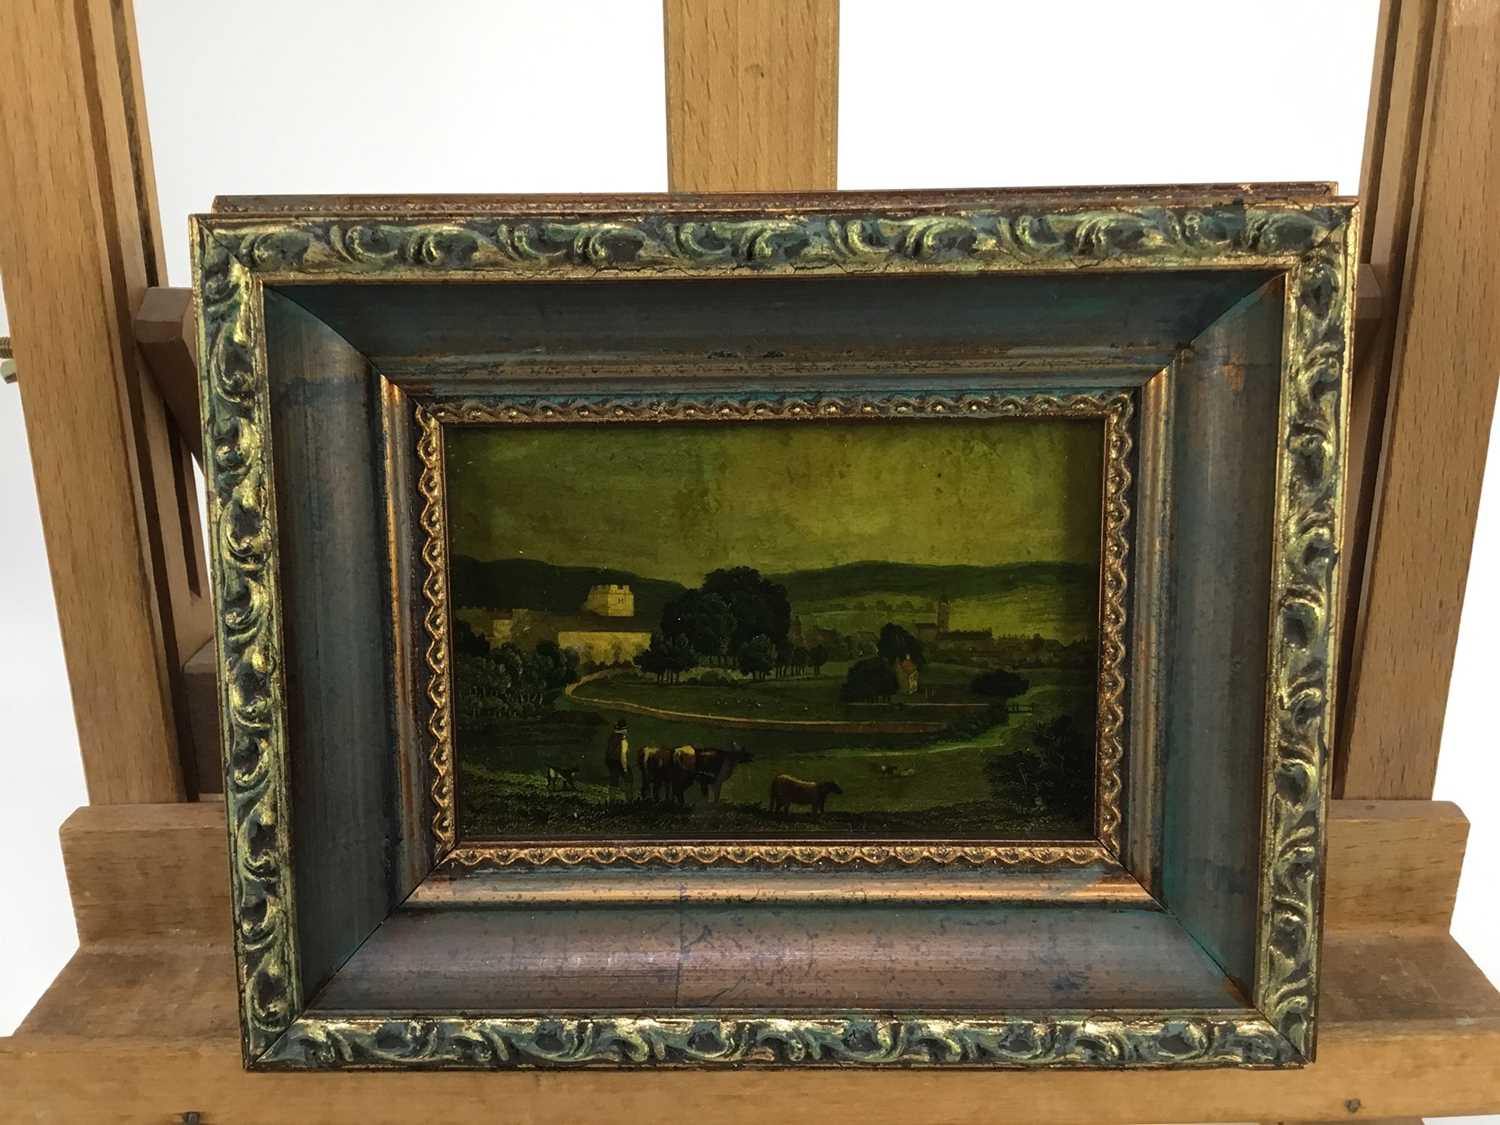 Jenny Simpson (1931-2020), Georgian-style glass pictures, framed and glazed - eight mixed pictures - Image 5 of 11